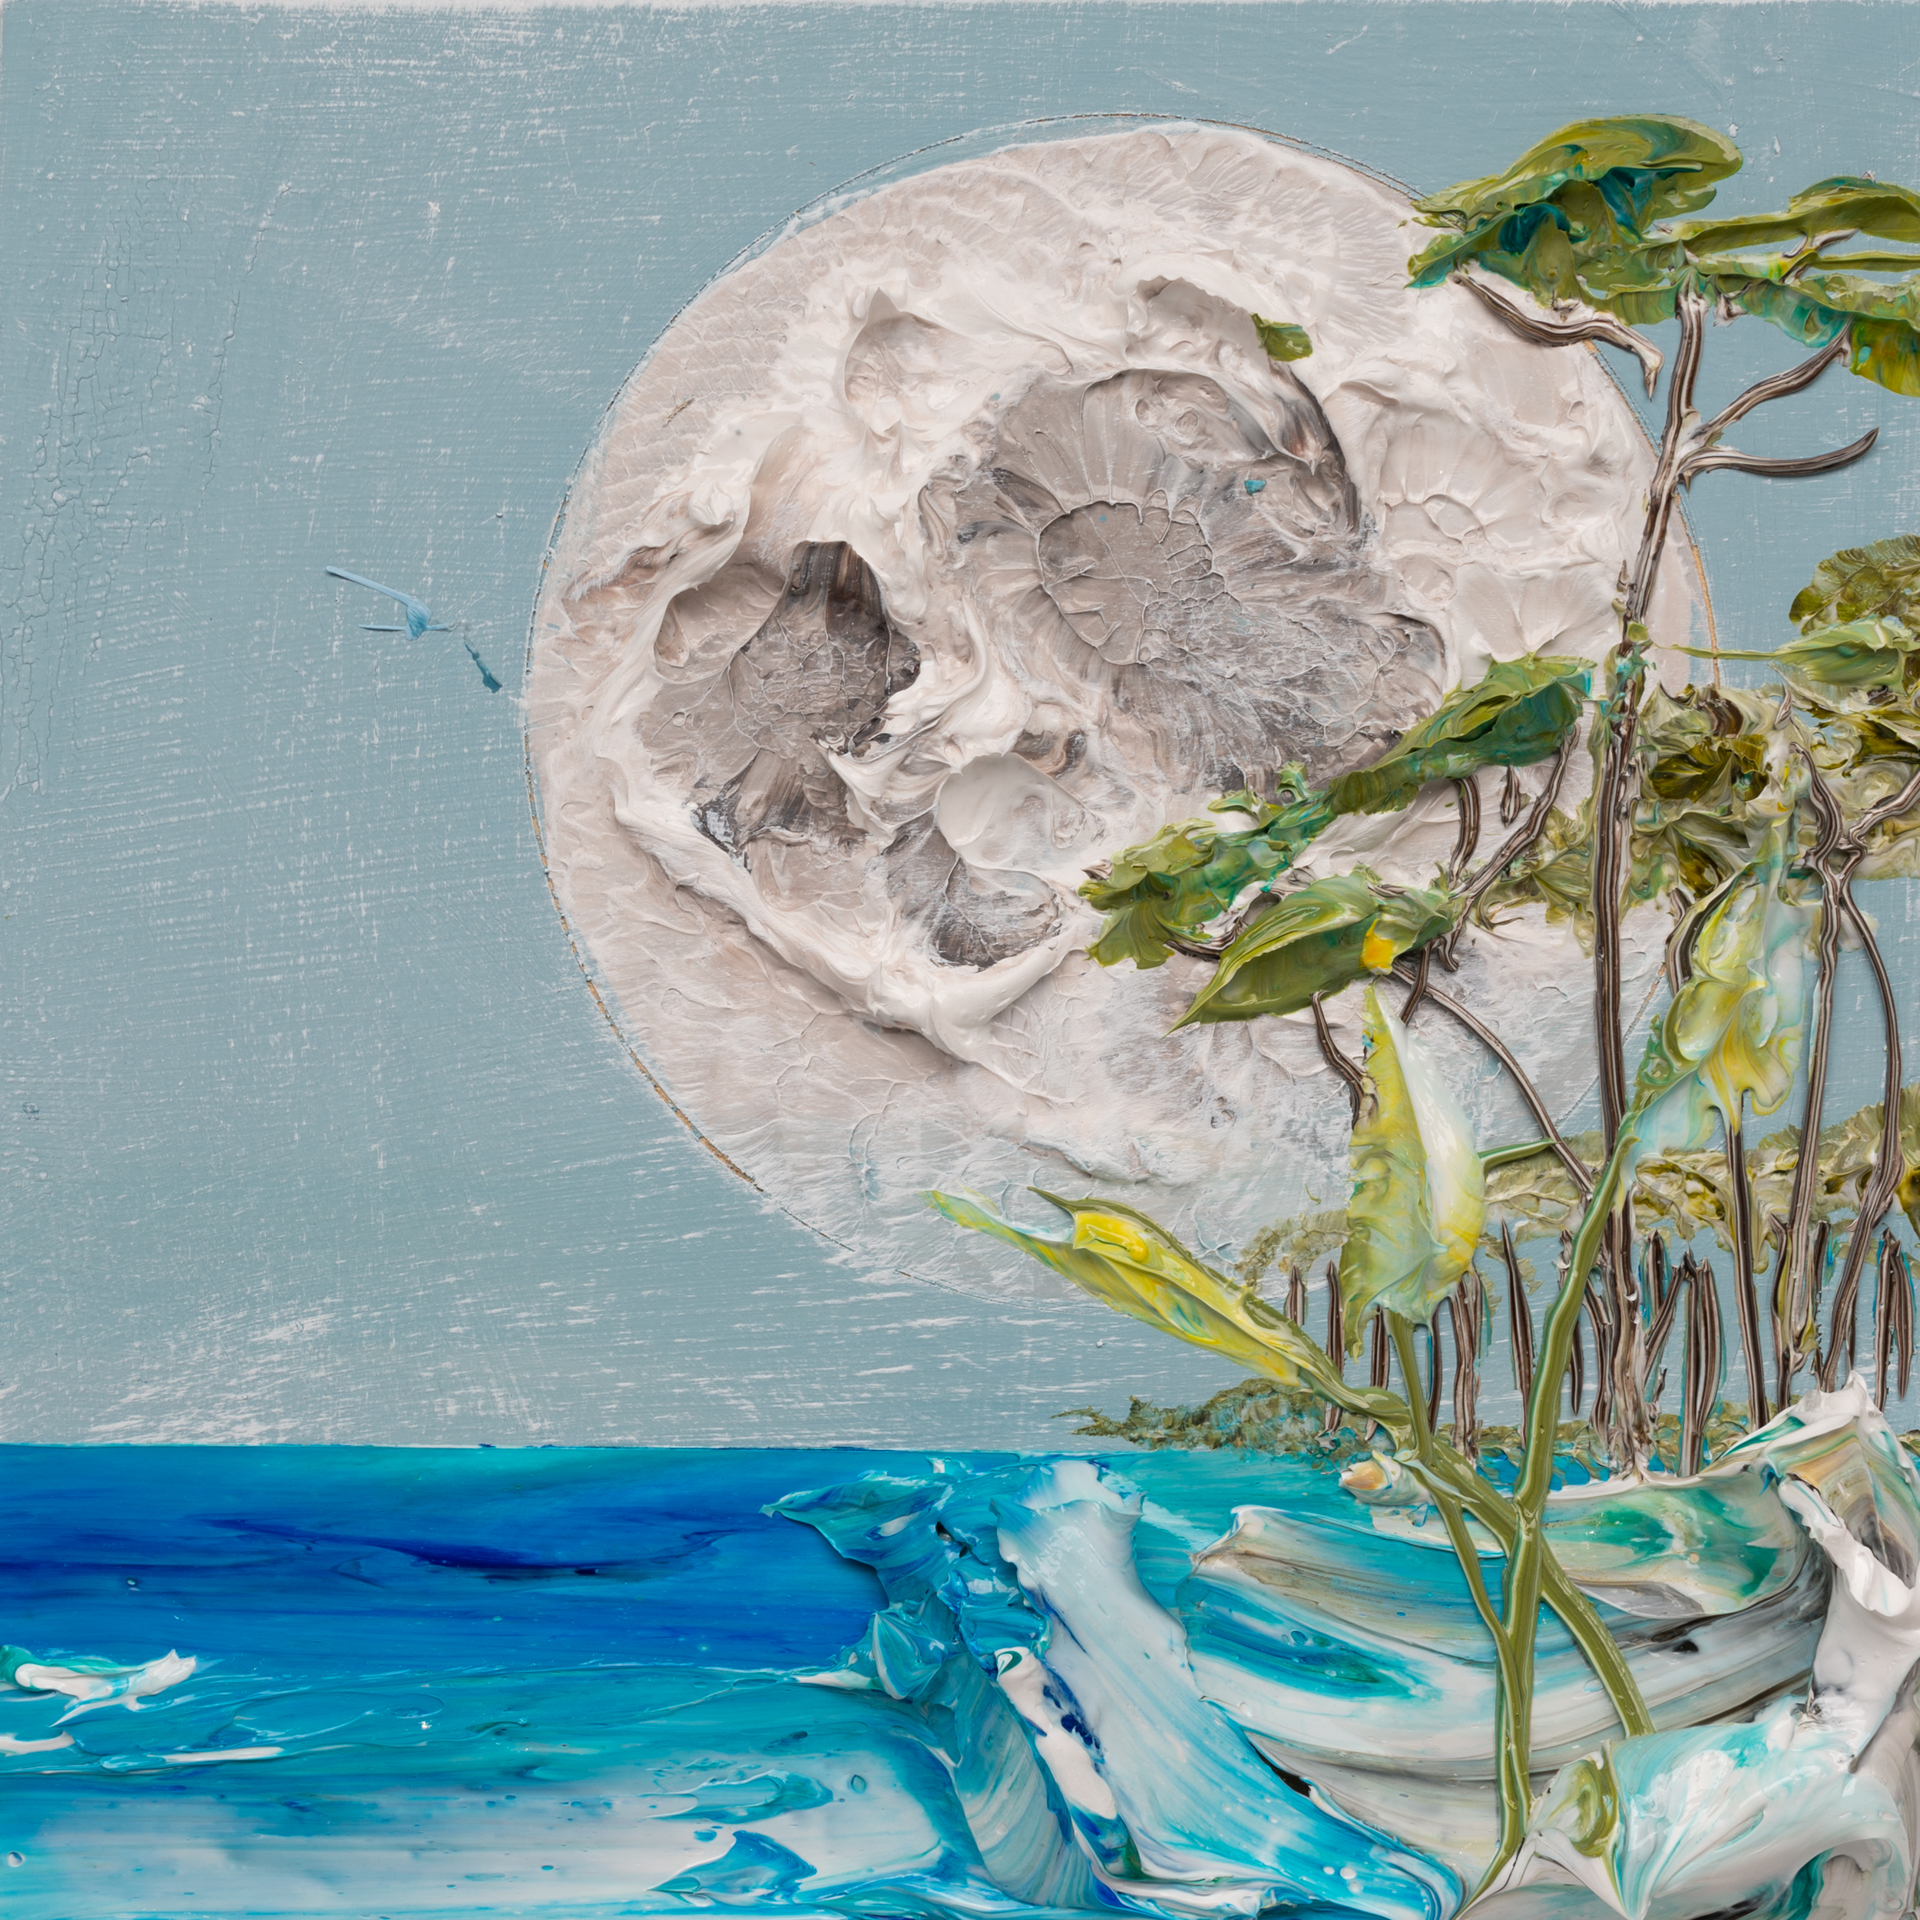 MOONSCAPE MS-12X12-2019-321 by JUSTIN GAFFREY